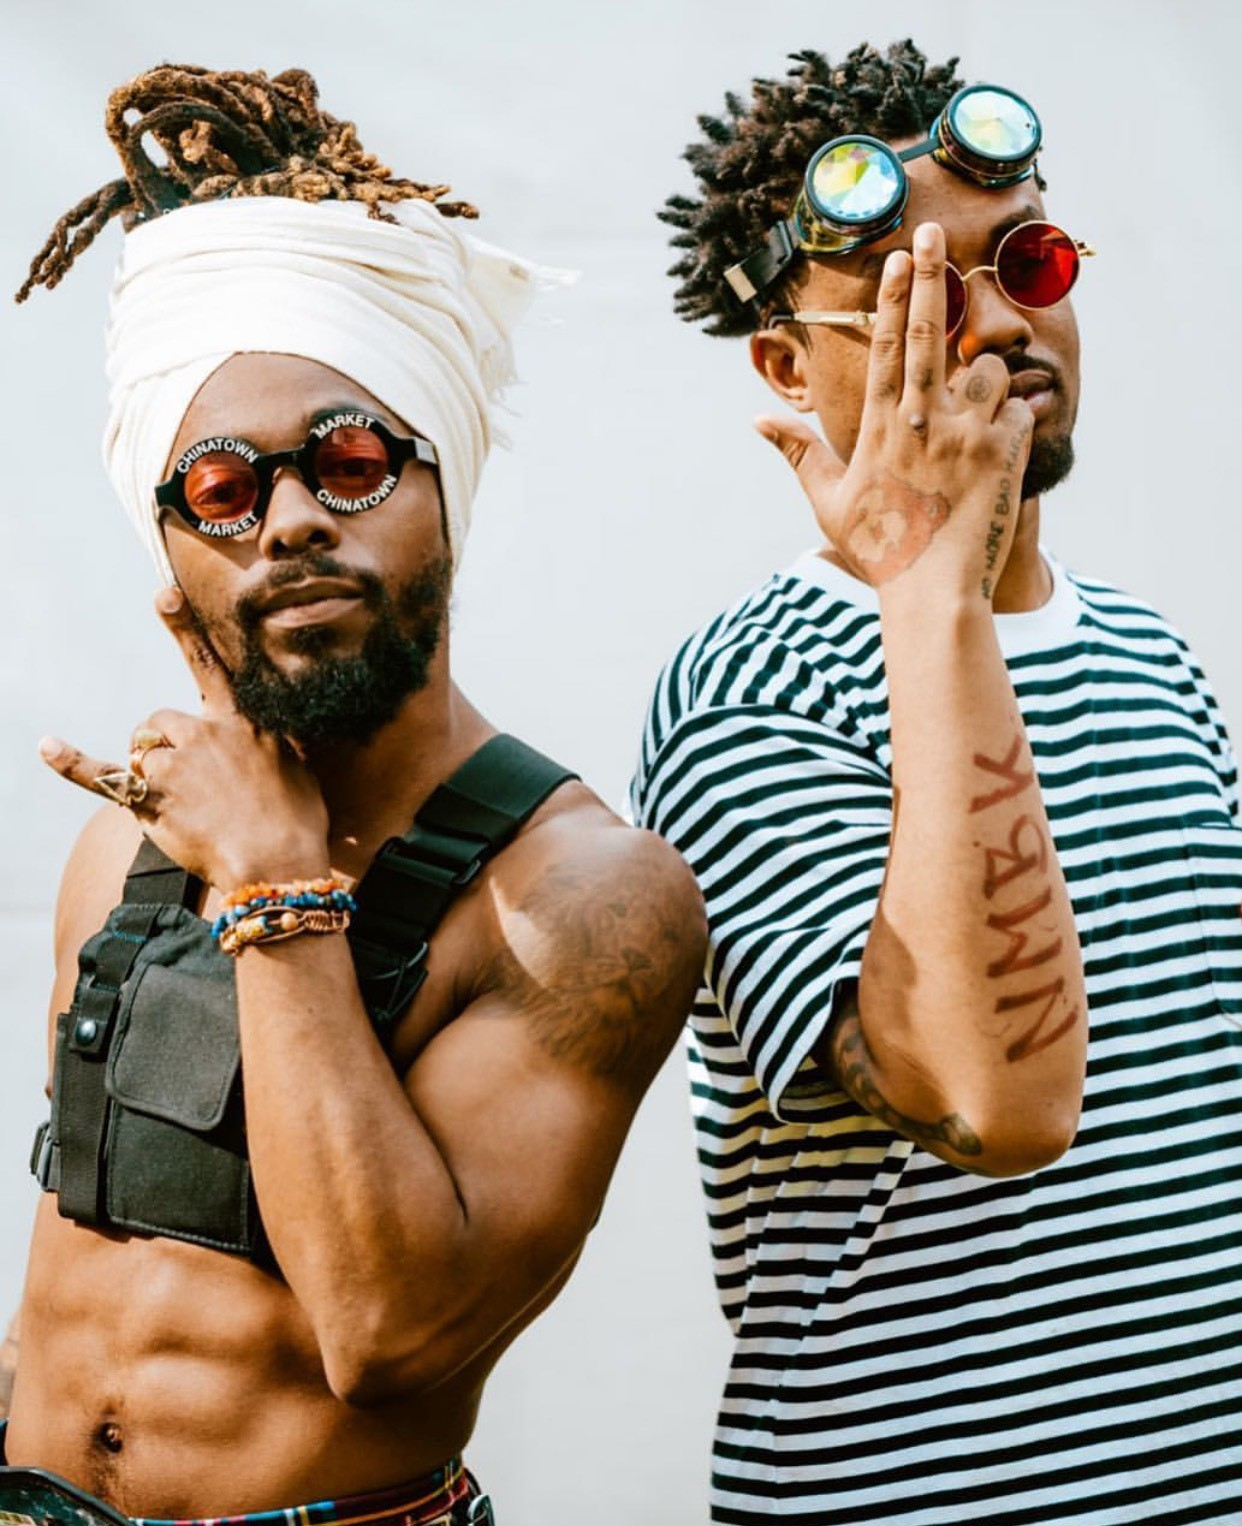 CAN DO! IS ROCKING THE DAISIES 2019! FESTIVAL MAKES HUGE ANNOUNCEMENTS! EarthGang press photo